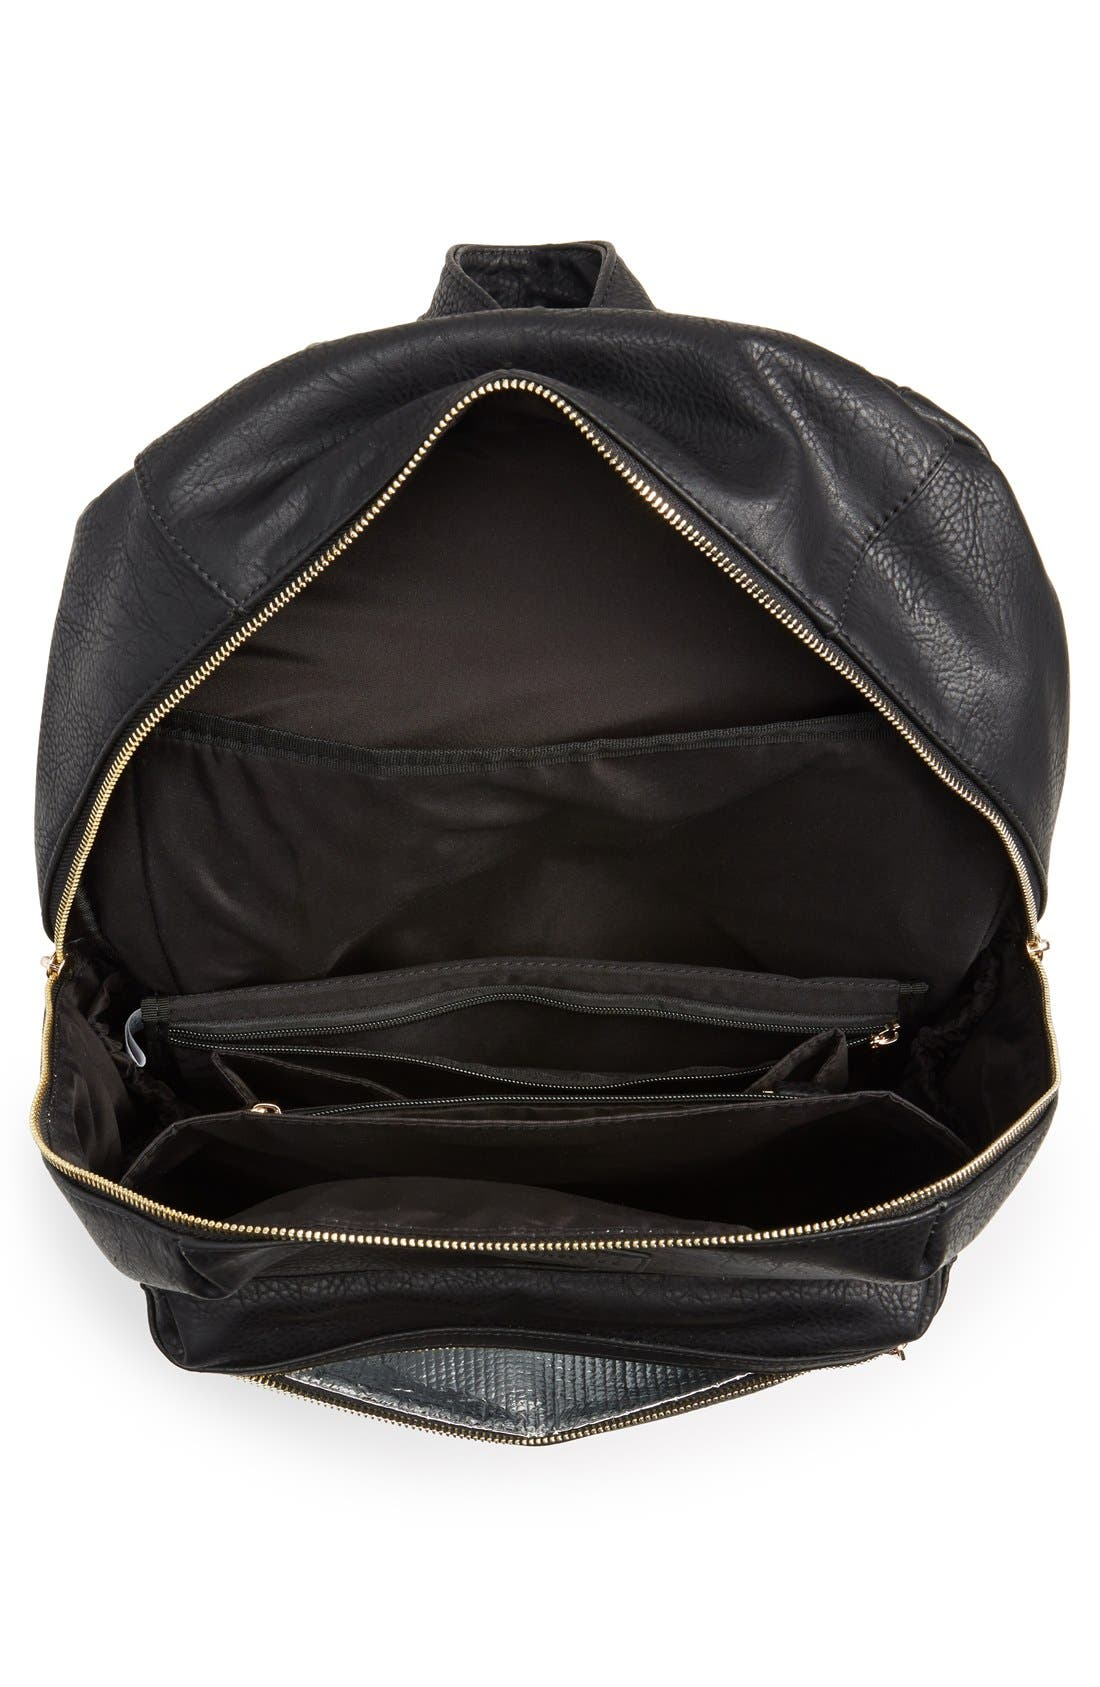 THE HONEST COMPANY, 'City' Faux Leather Diaper Backpack, Alternate thumbnail 4, color, BLACK